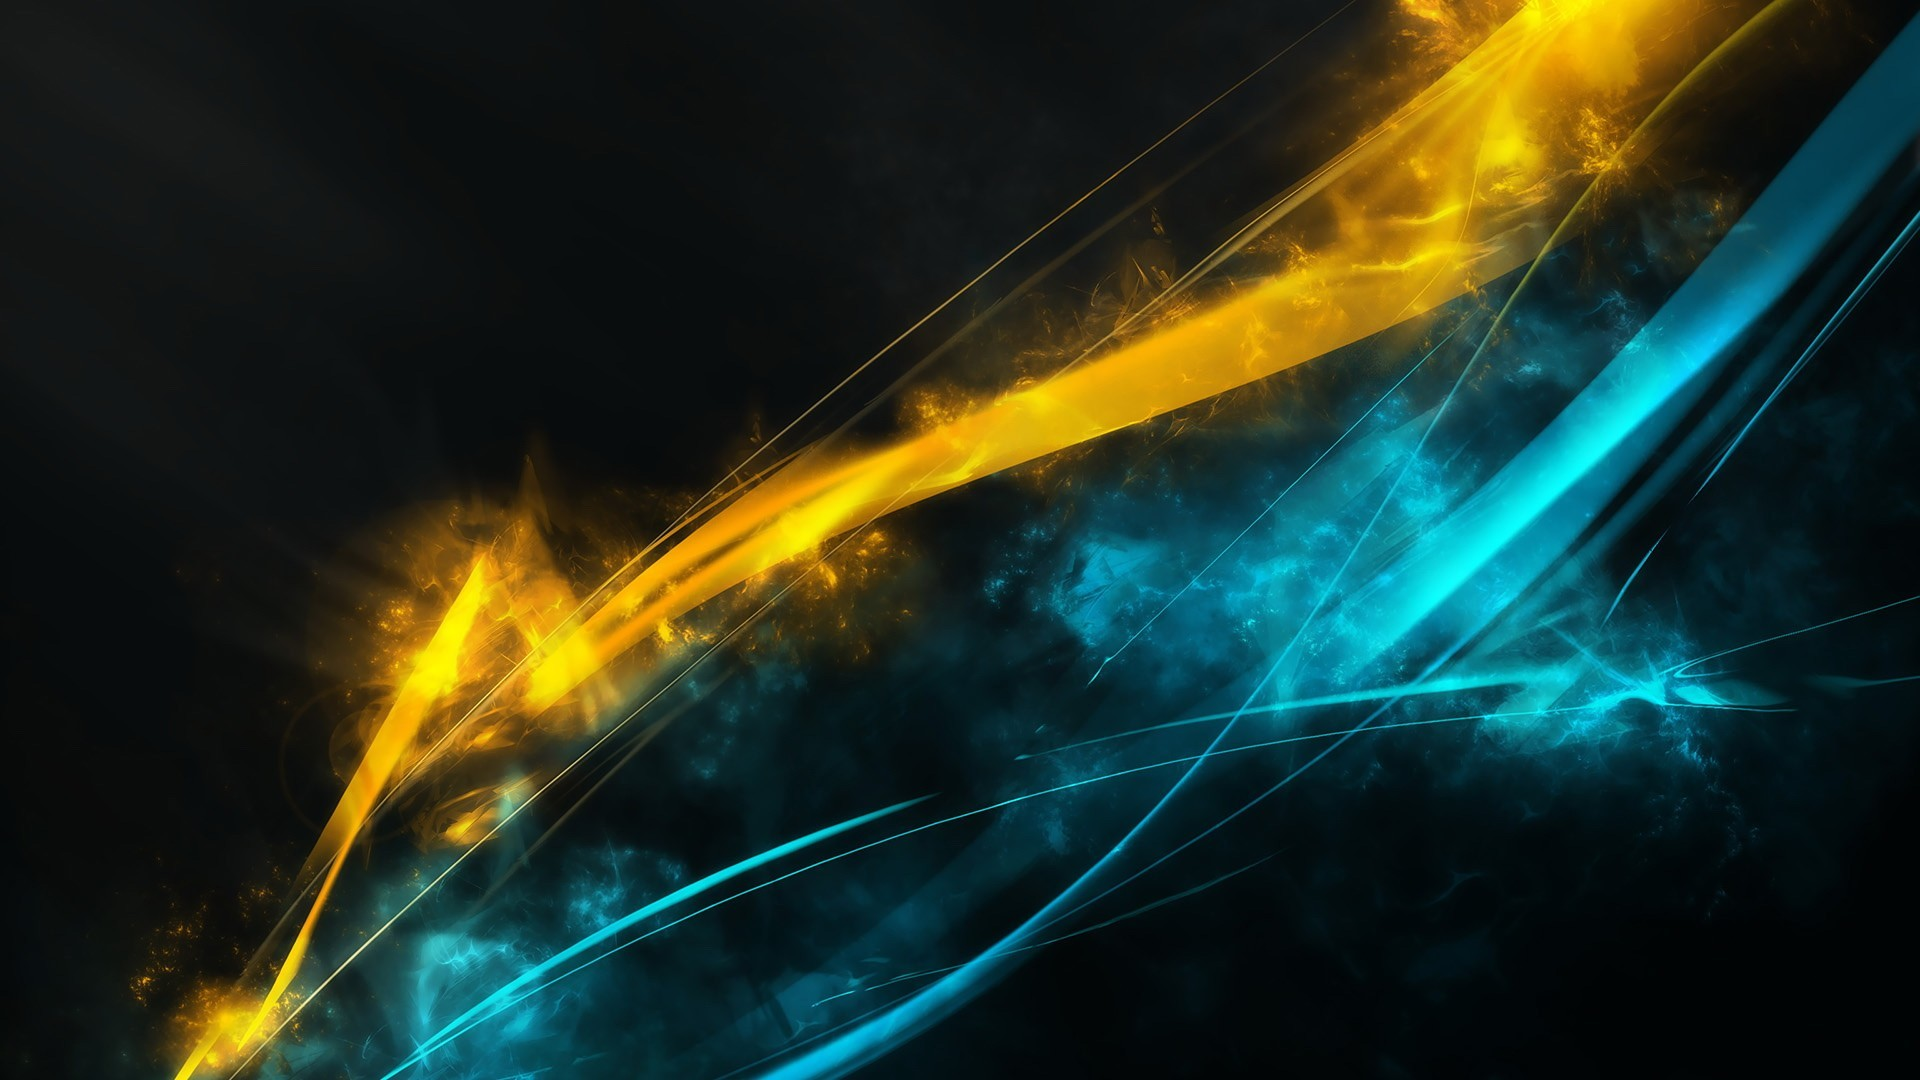 1920x1080 Abstract Wallpaper 1080p For Free Wallpaper